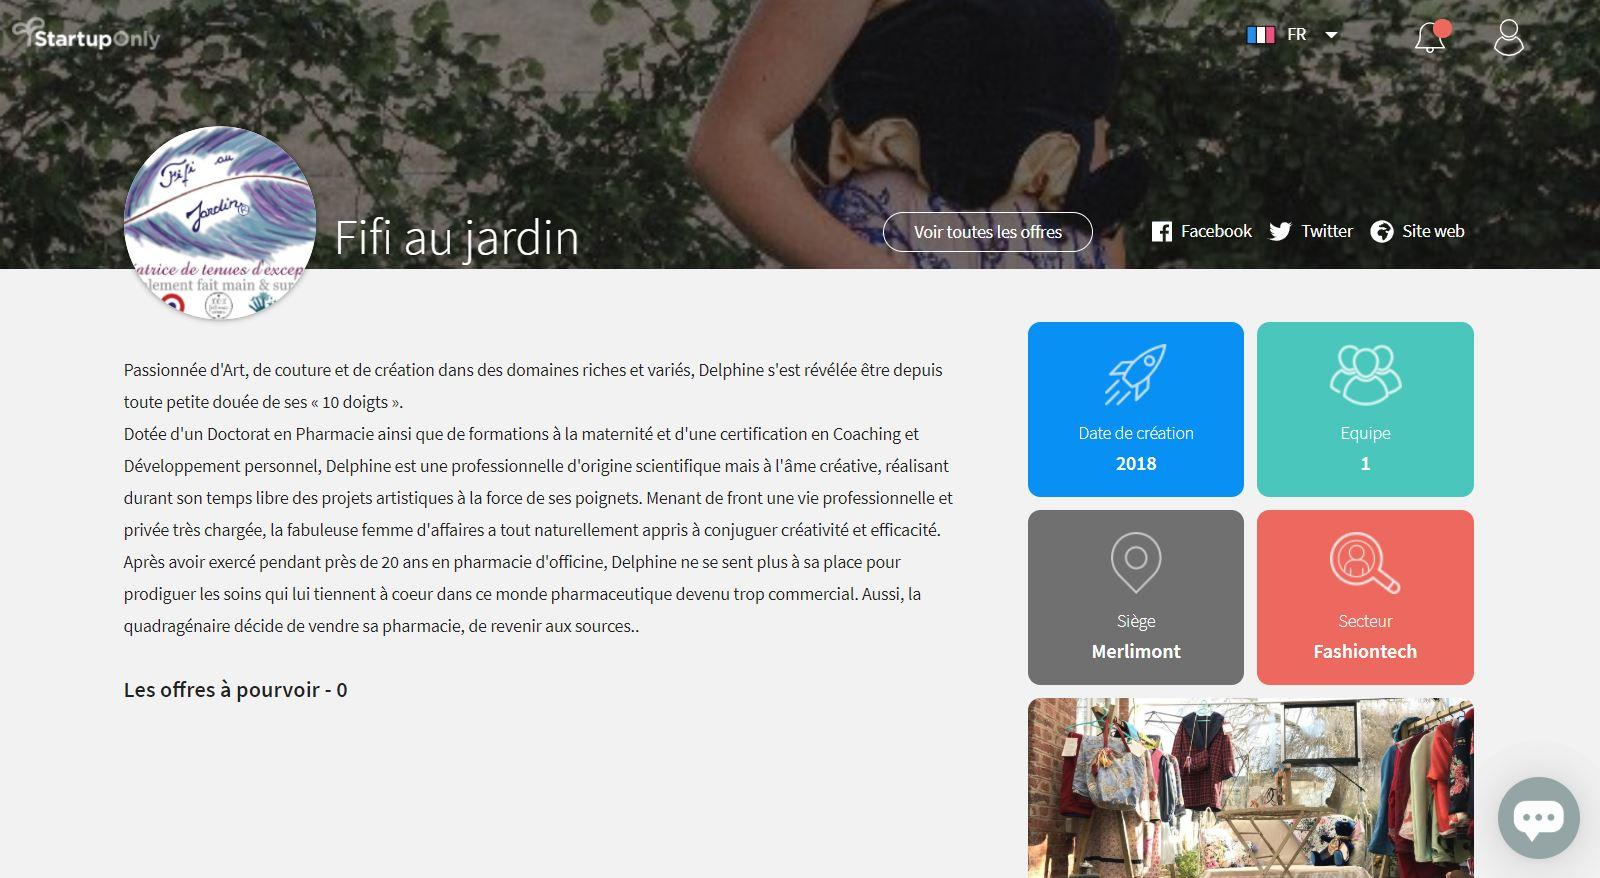 Article prive fifi au jardin 092020 startuponly